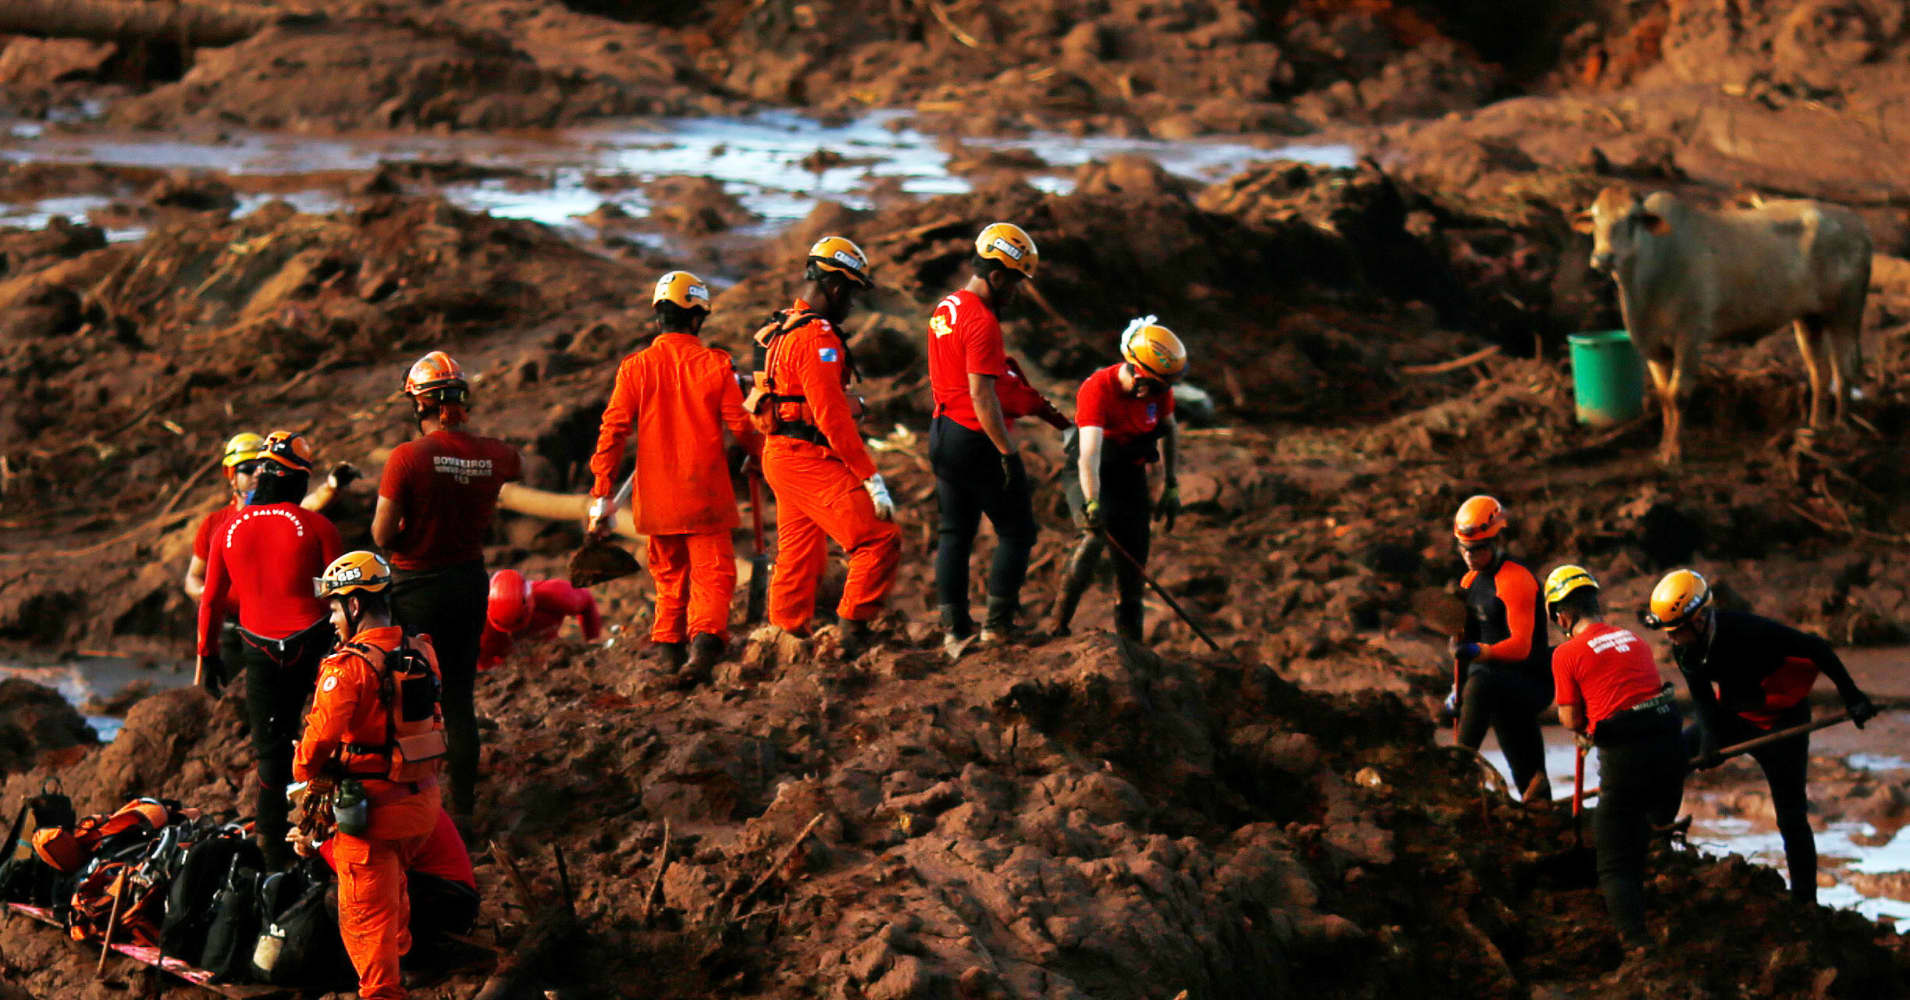 Death toll grows to 60 from tragic collapse of a dam owned by Brazilian mining giant Vale